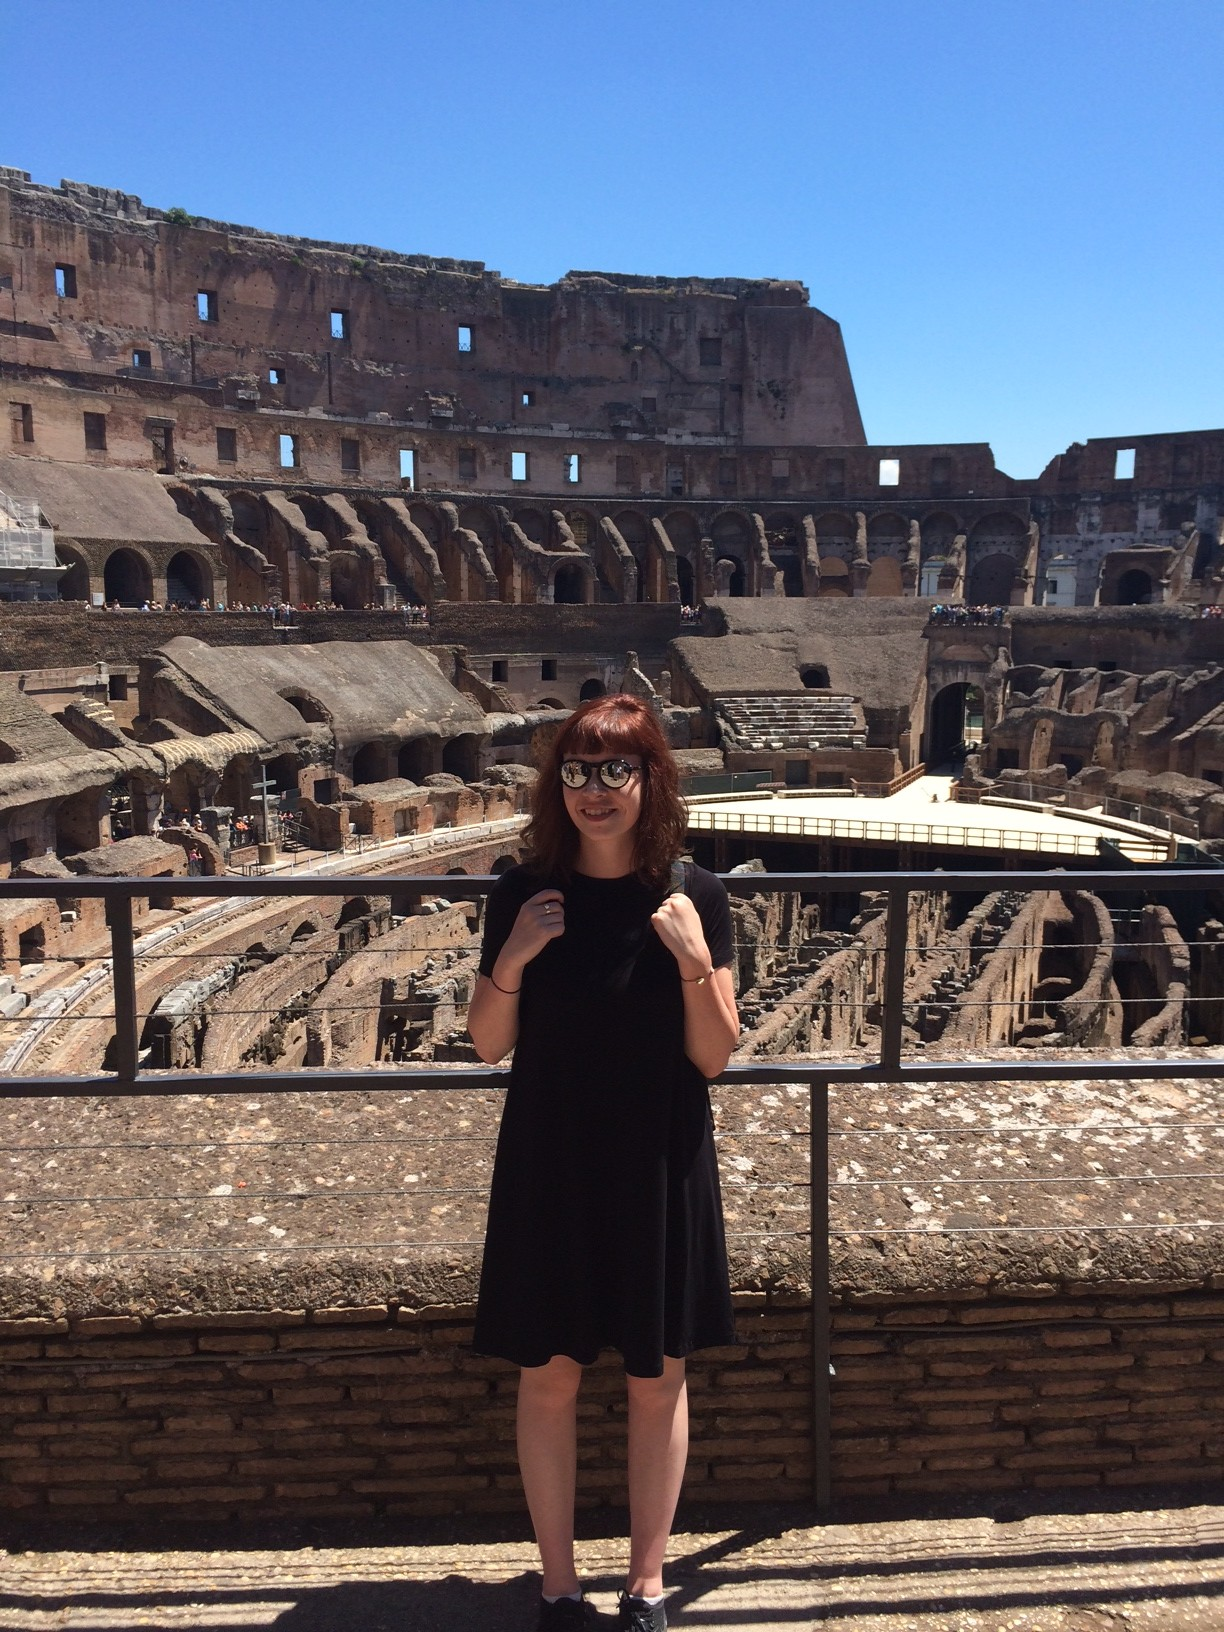 The Colosseum! Rome is definitely one of my favorite places now.